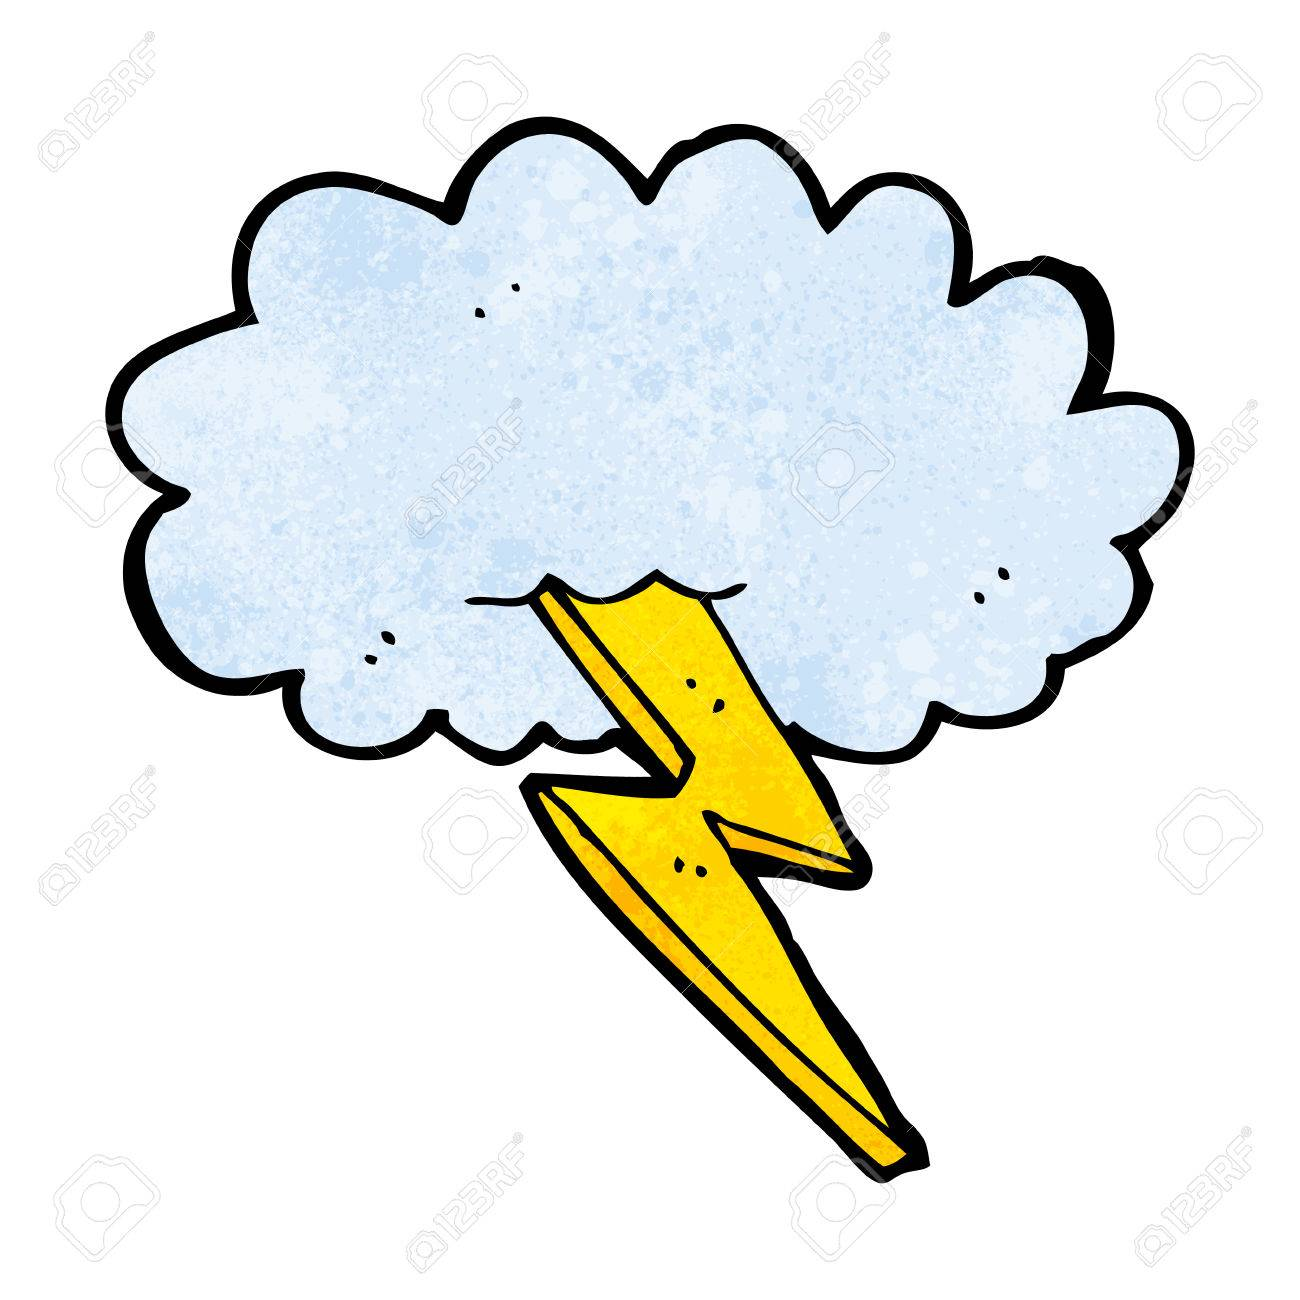 cartoon lightning bolt and cloud royalty free cliparts vectors and